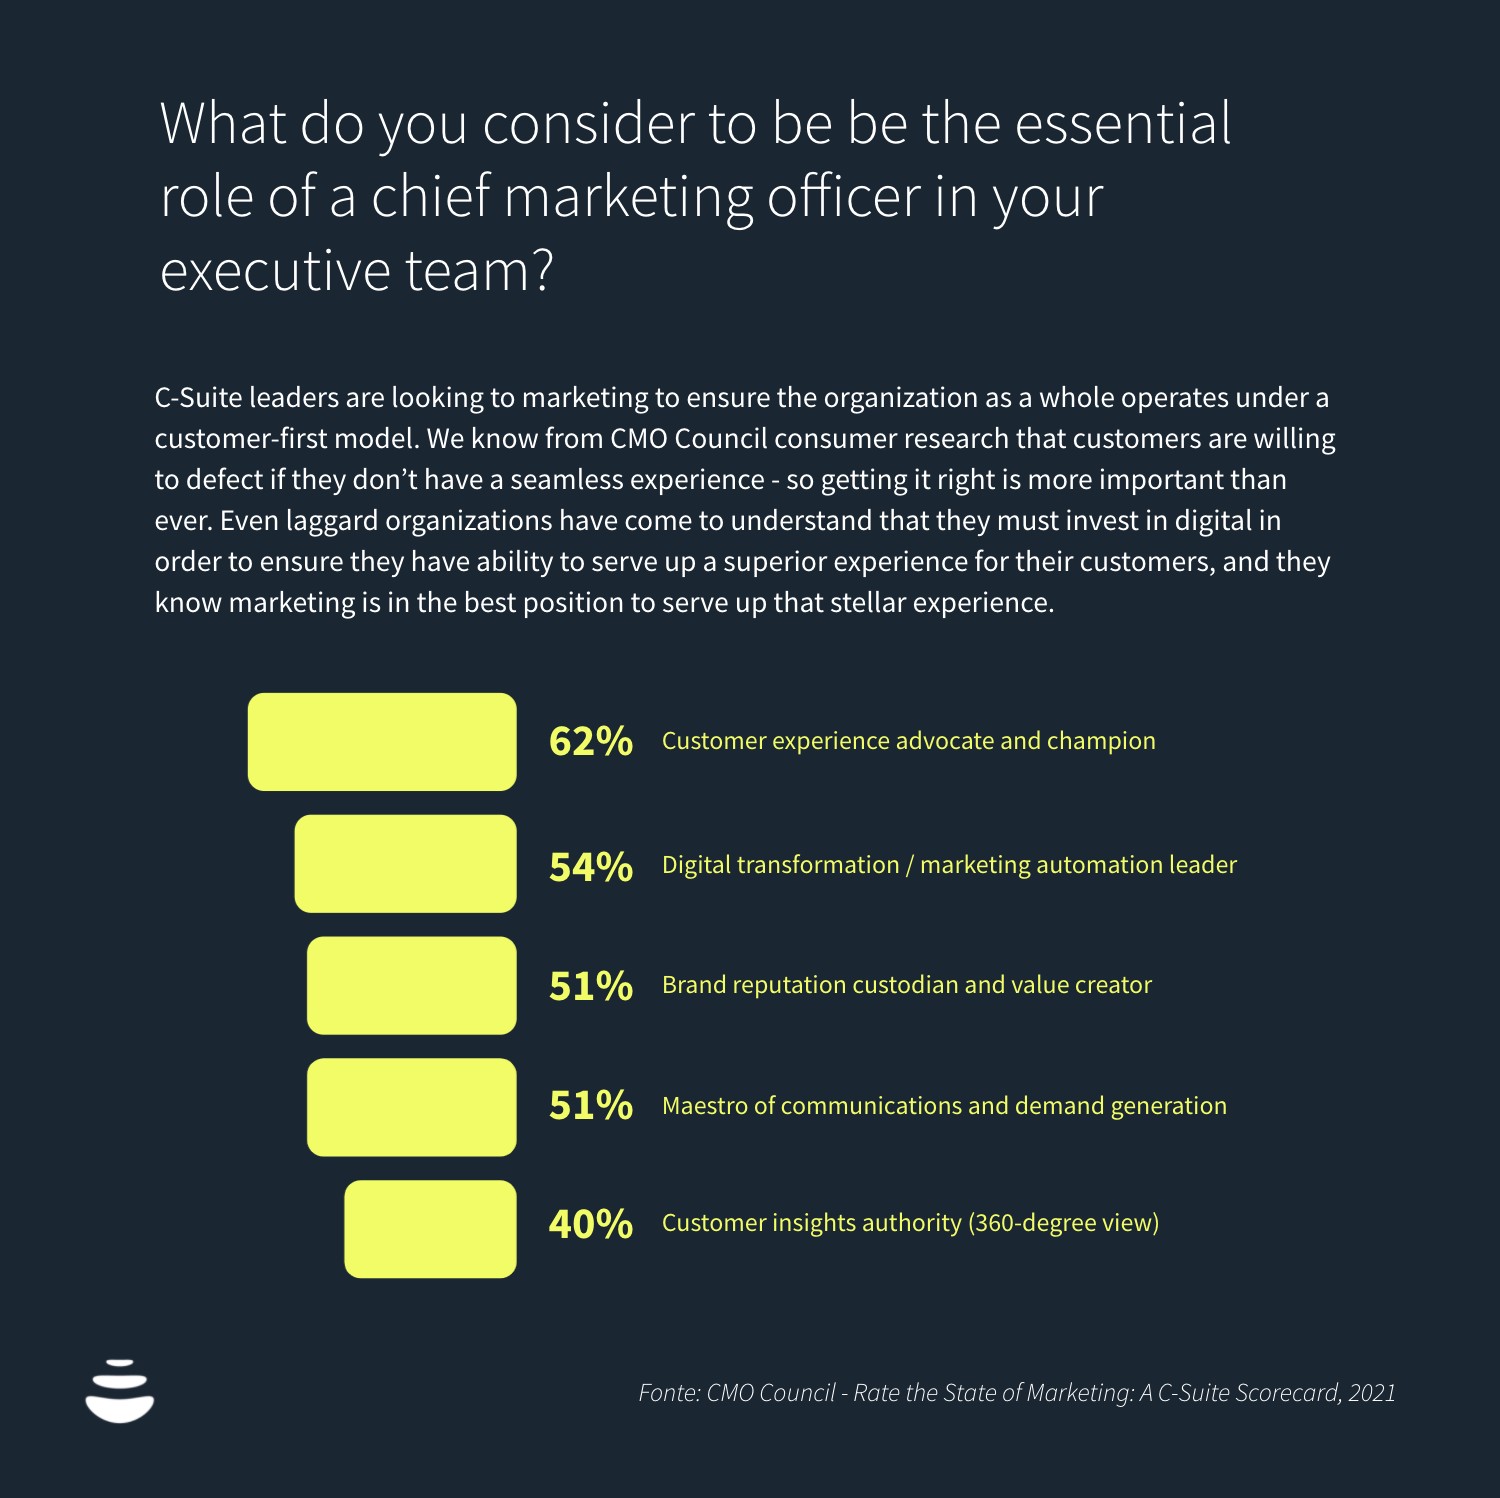 What do you consider to be be the essential role of a chief marketing officer in your executive team?